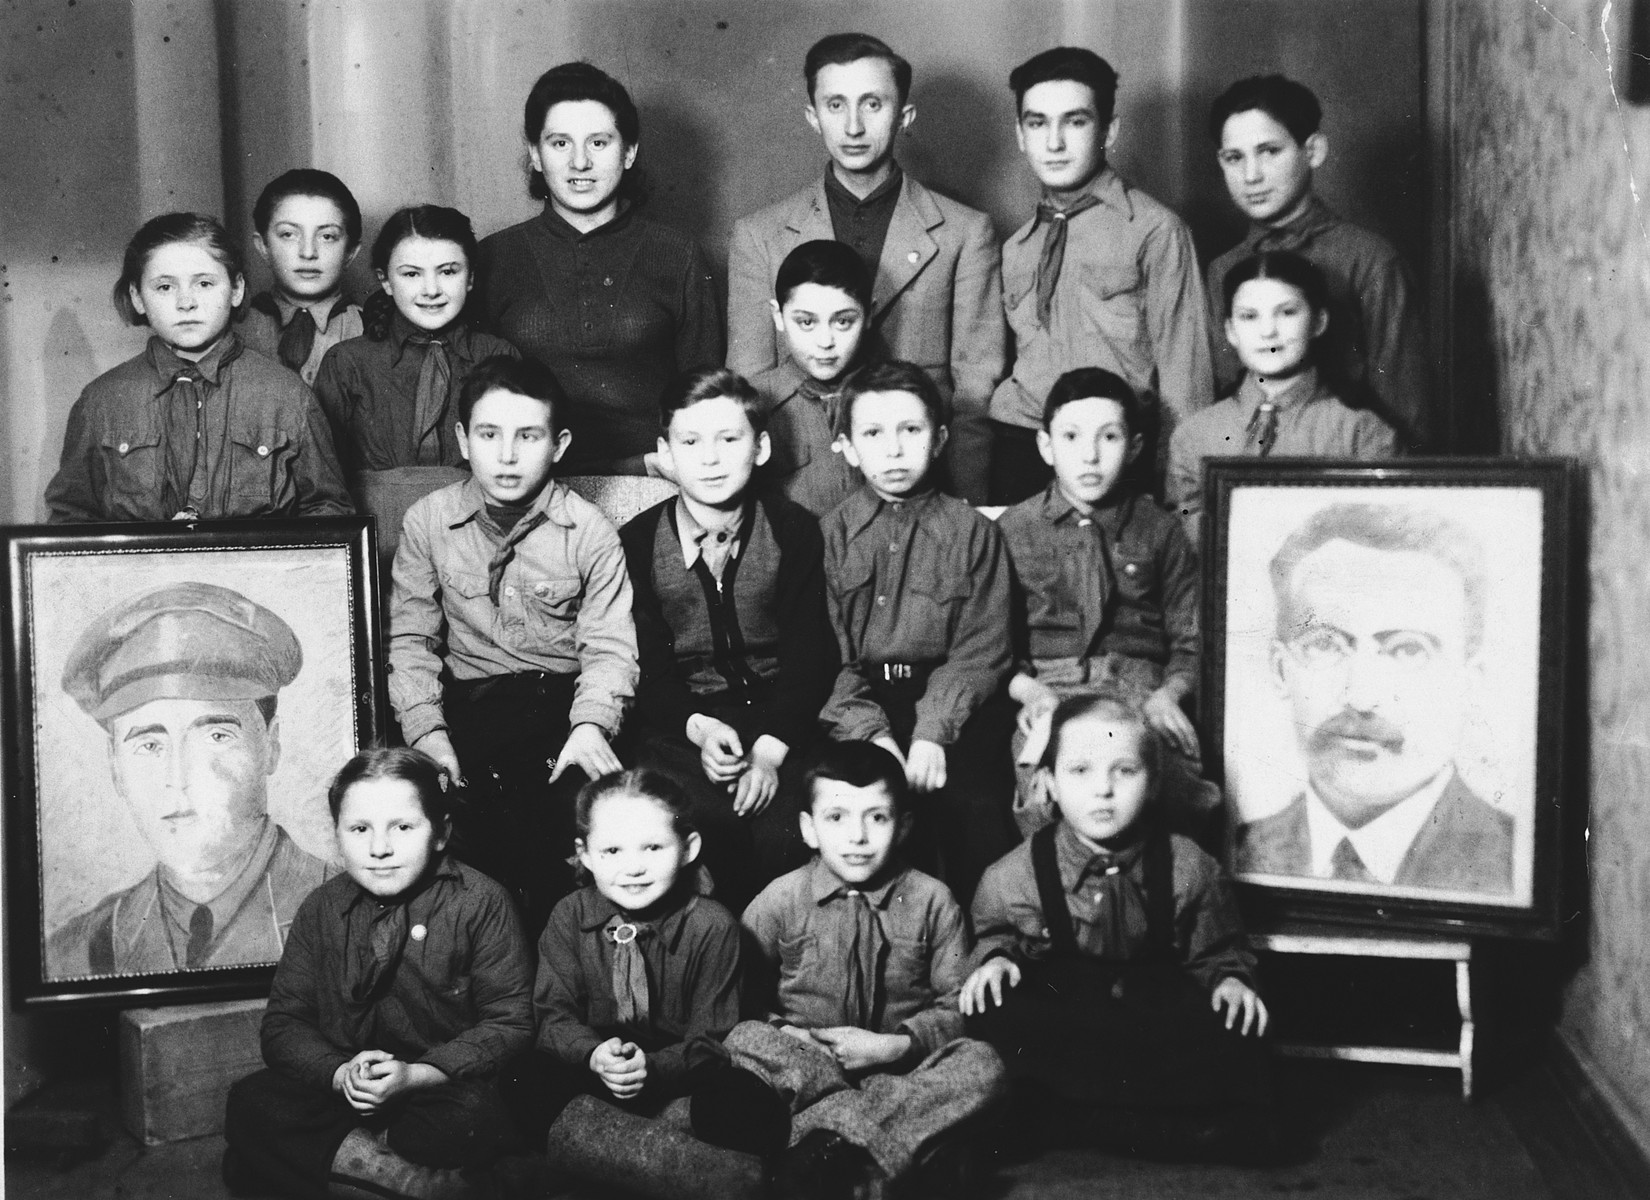 Children belonging to the Zionist  youth movement Dror in Poland pose between portraits of two Zionist heroes, Joseph Trumpeldor and Ber Borochov.  Among those seated on the floor is Leah Szain.